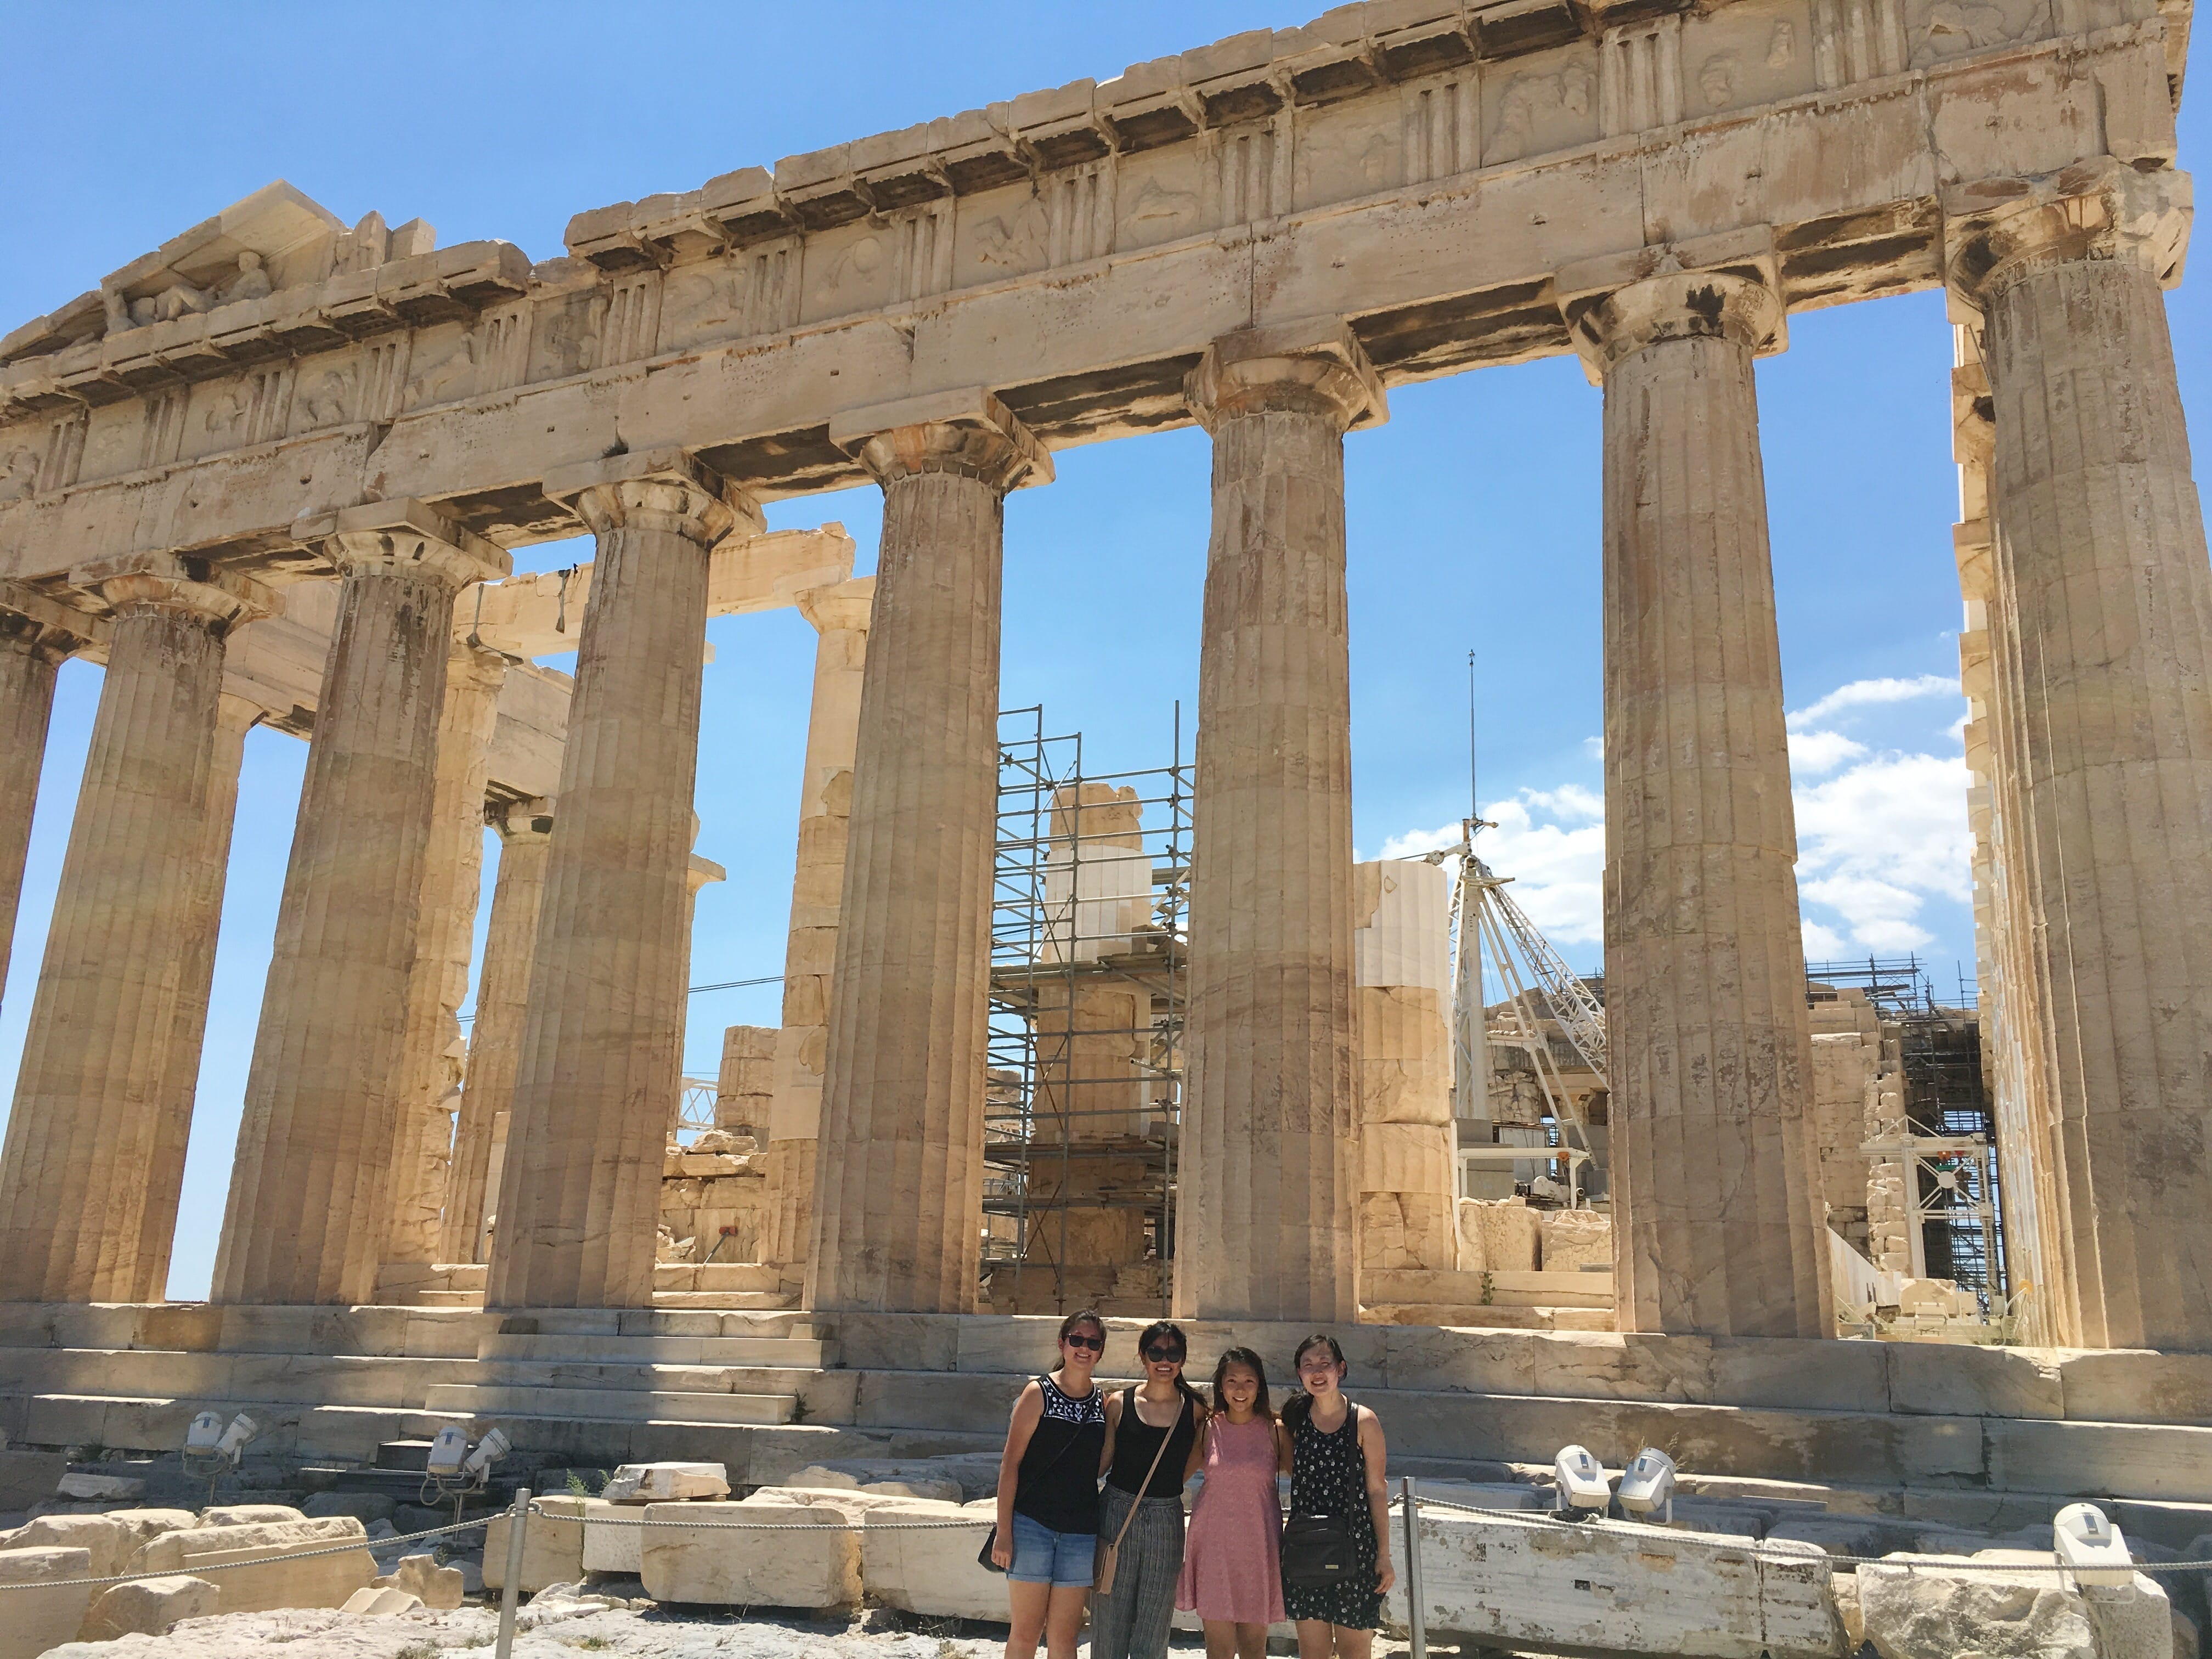 2017 Greece Missions: Unity and Diversity